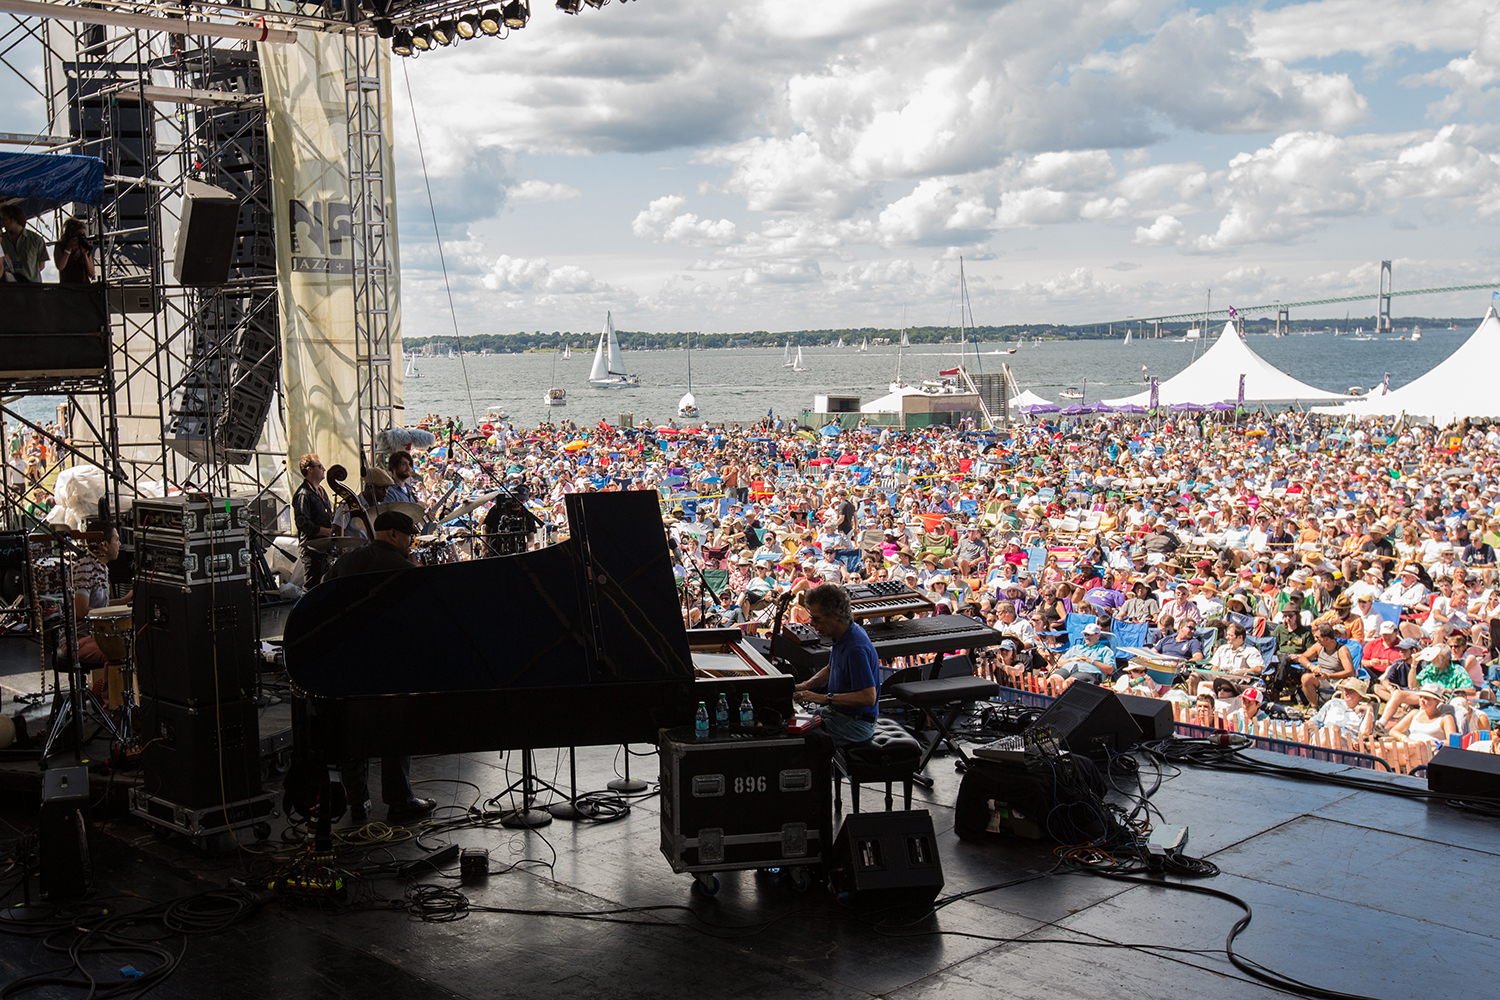 Chick Corea performing at the 2013 Newport Jazz Festival. Photo credit: Douglas Mason